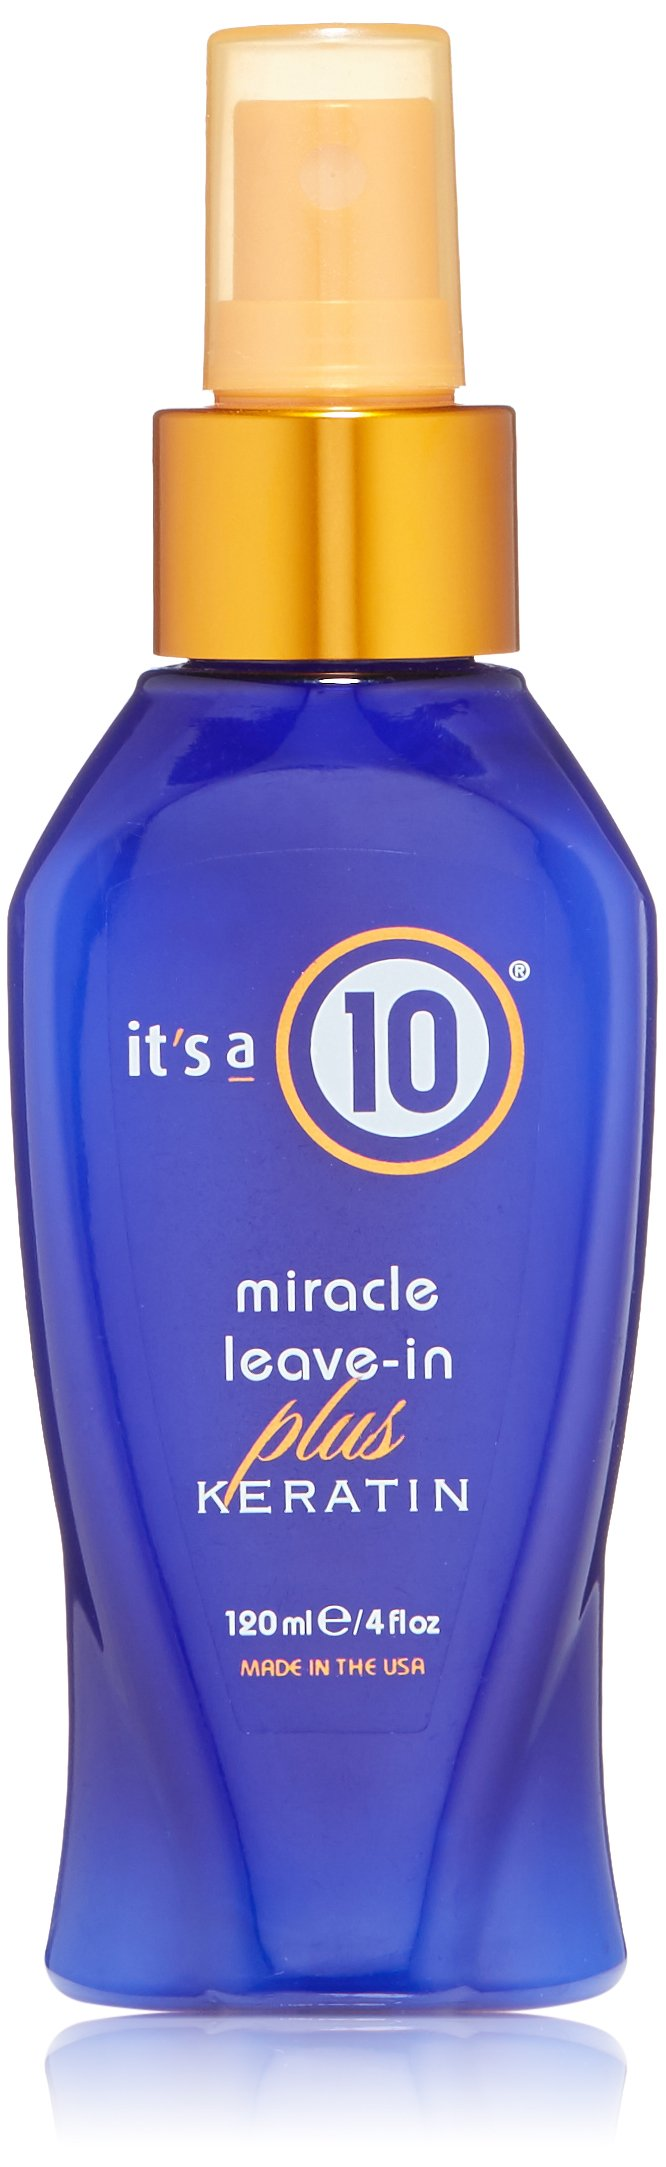 It's a 10 Haircare Miracle Leave-In Plus Keratin, 4 fl. oz. by It's a 10 Haircare